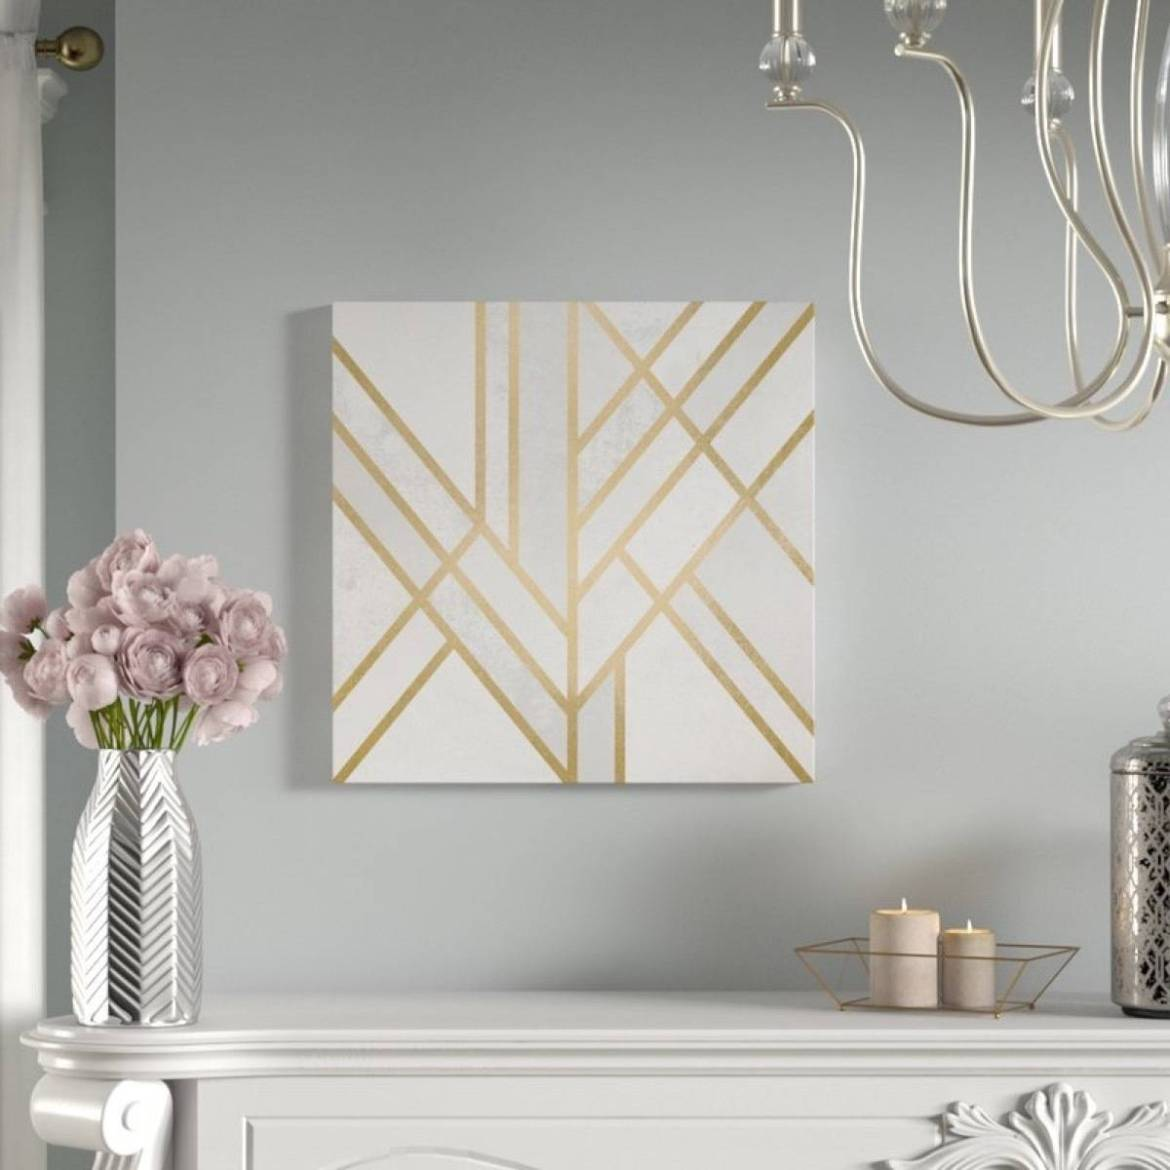 Art Deco graphic wall art from All Modern